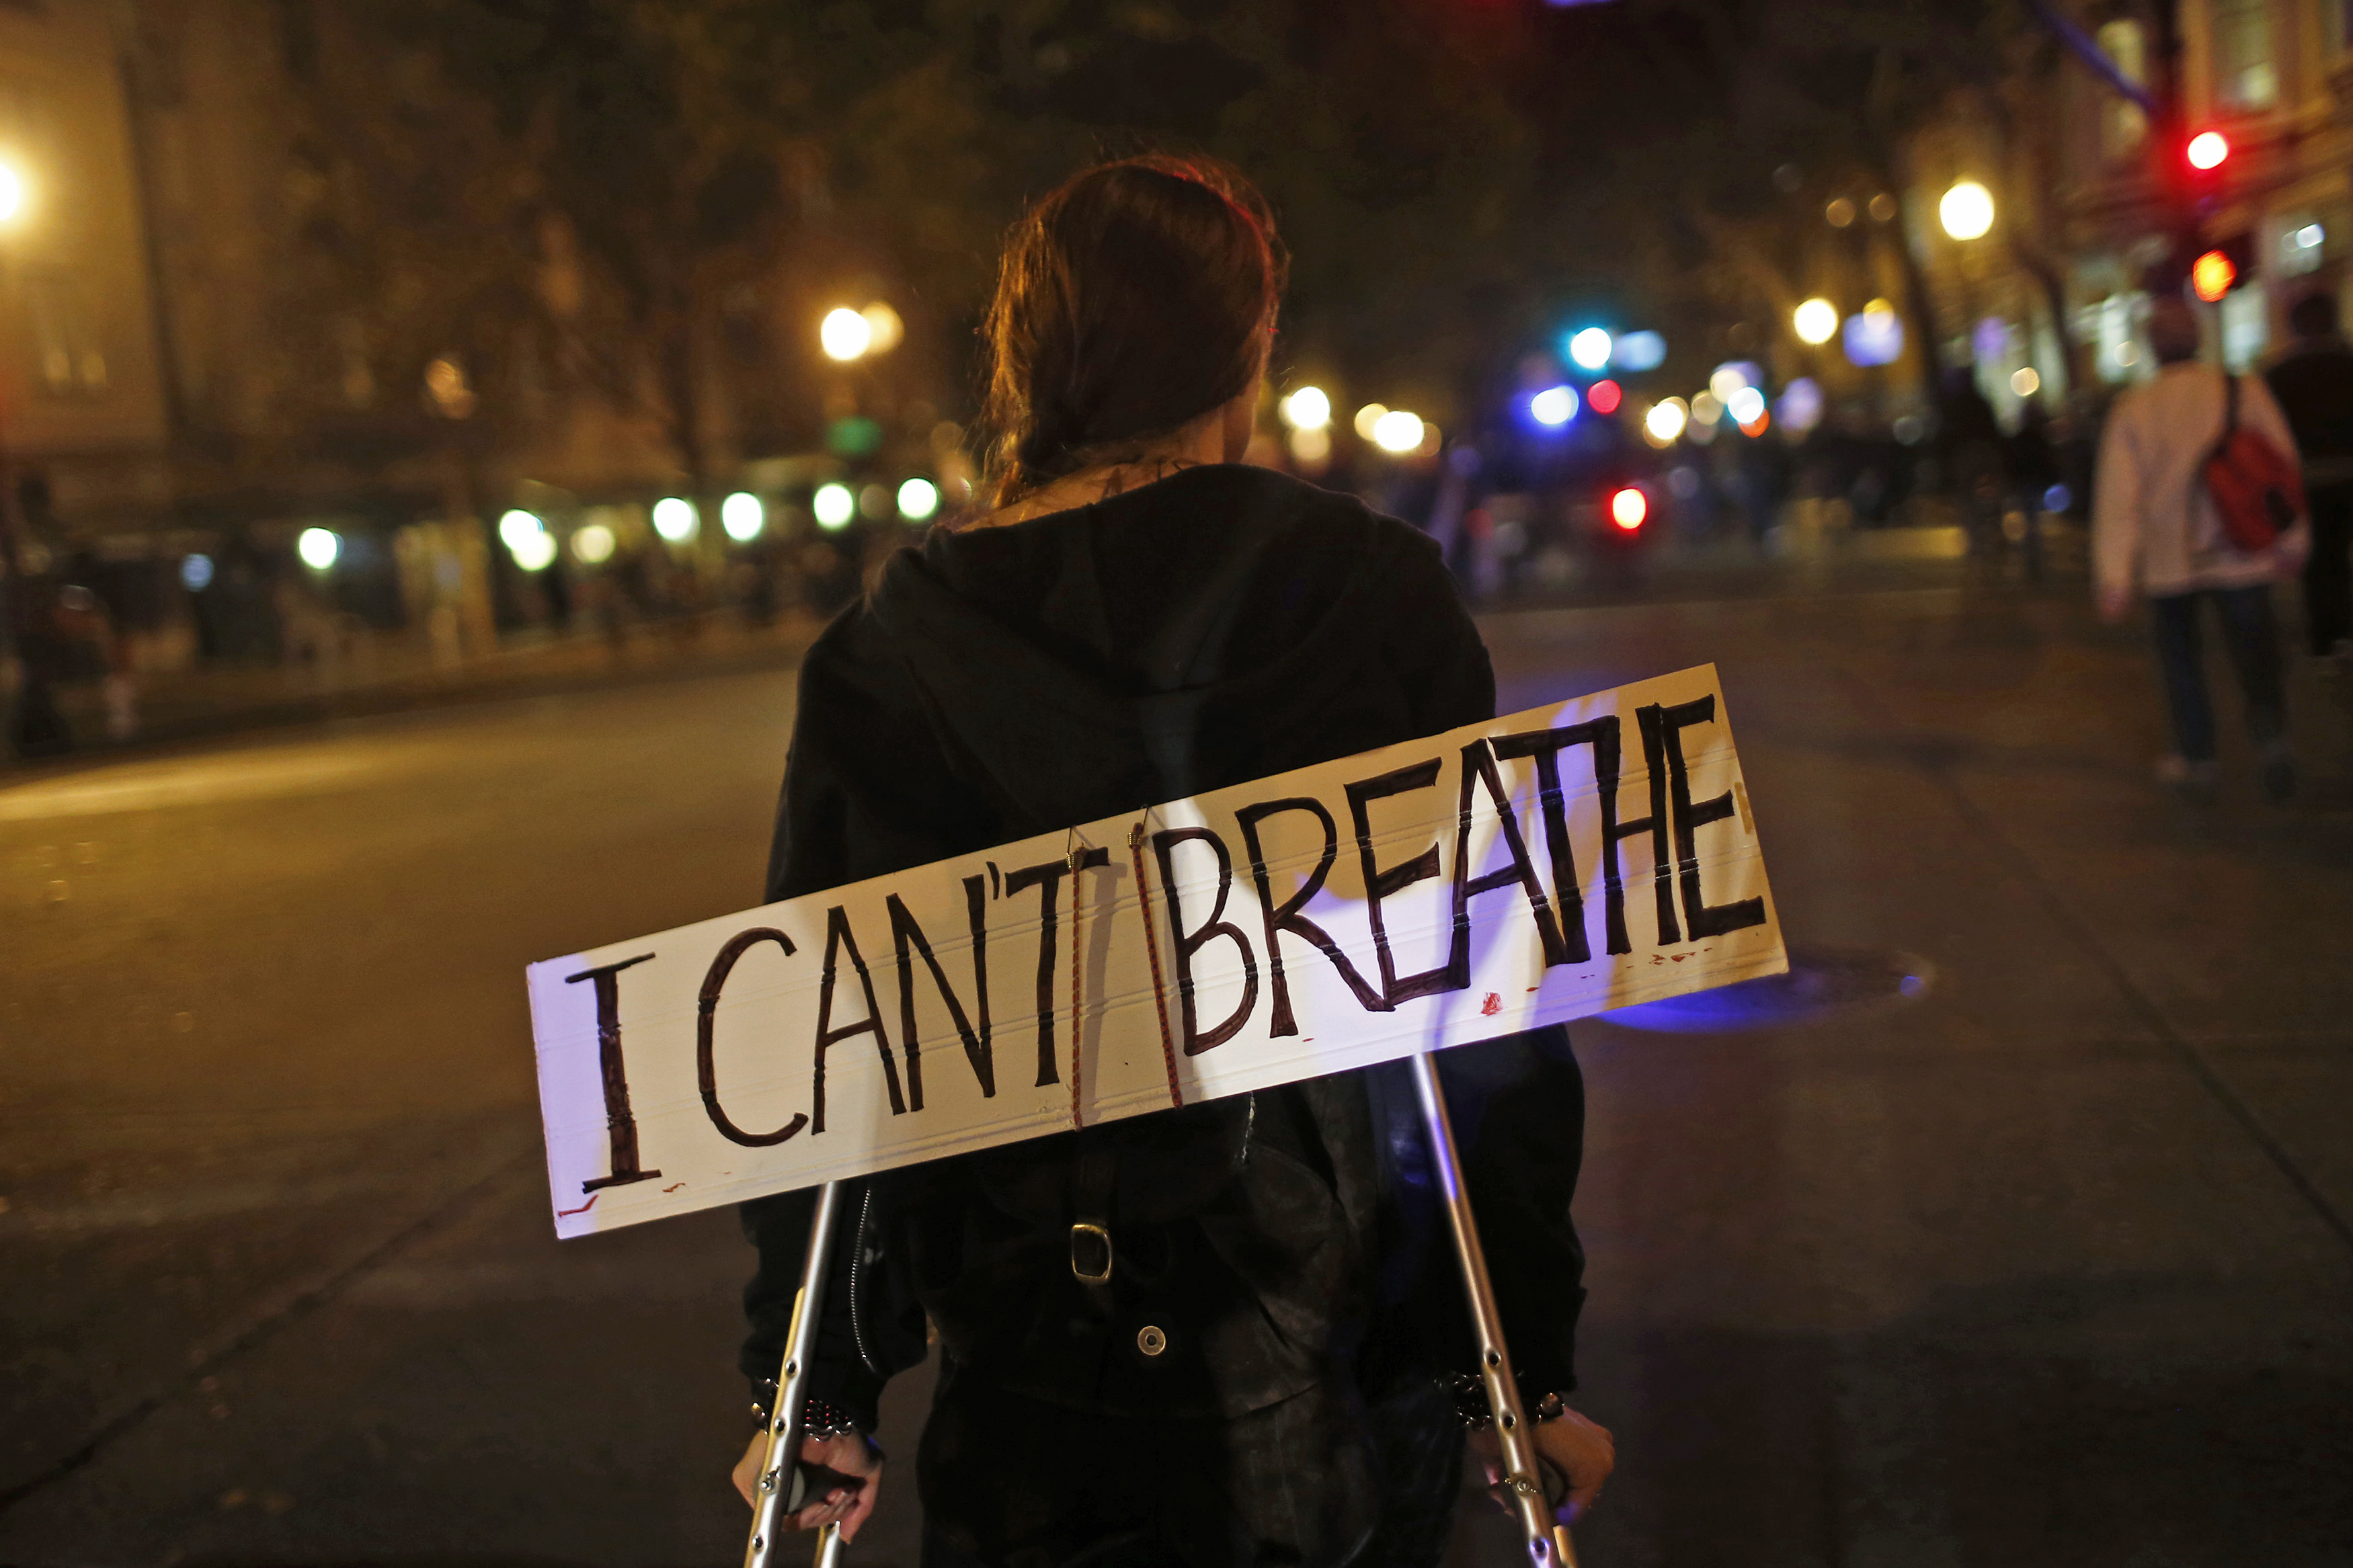 A protester in Oakland, California, on  December 3, 2014, wears a sign during a demonstration against the decision by a New York City grand jury not to indict a police officer in the death of Eric Garner.